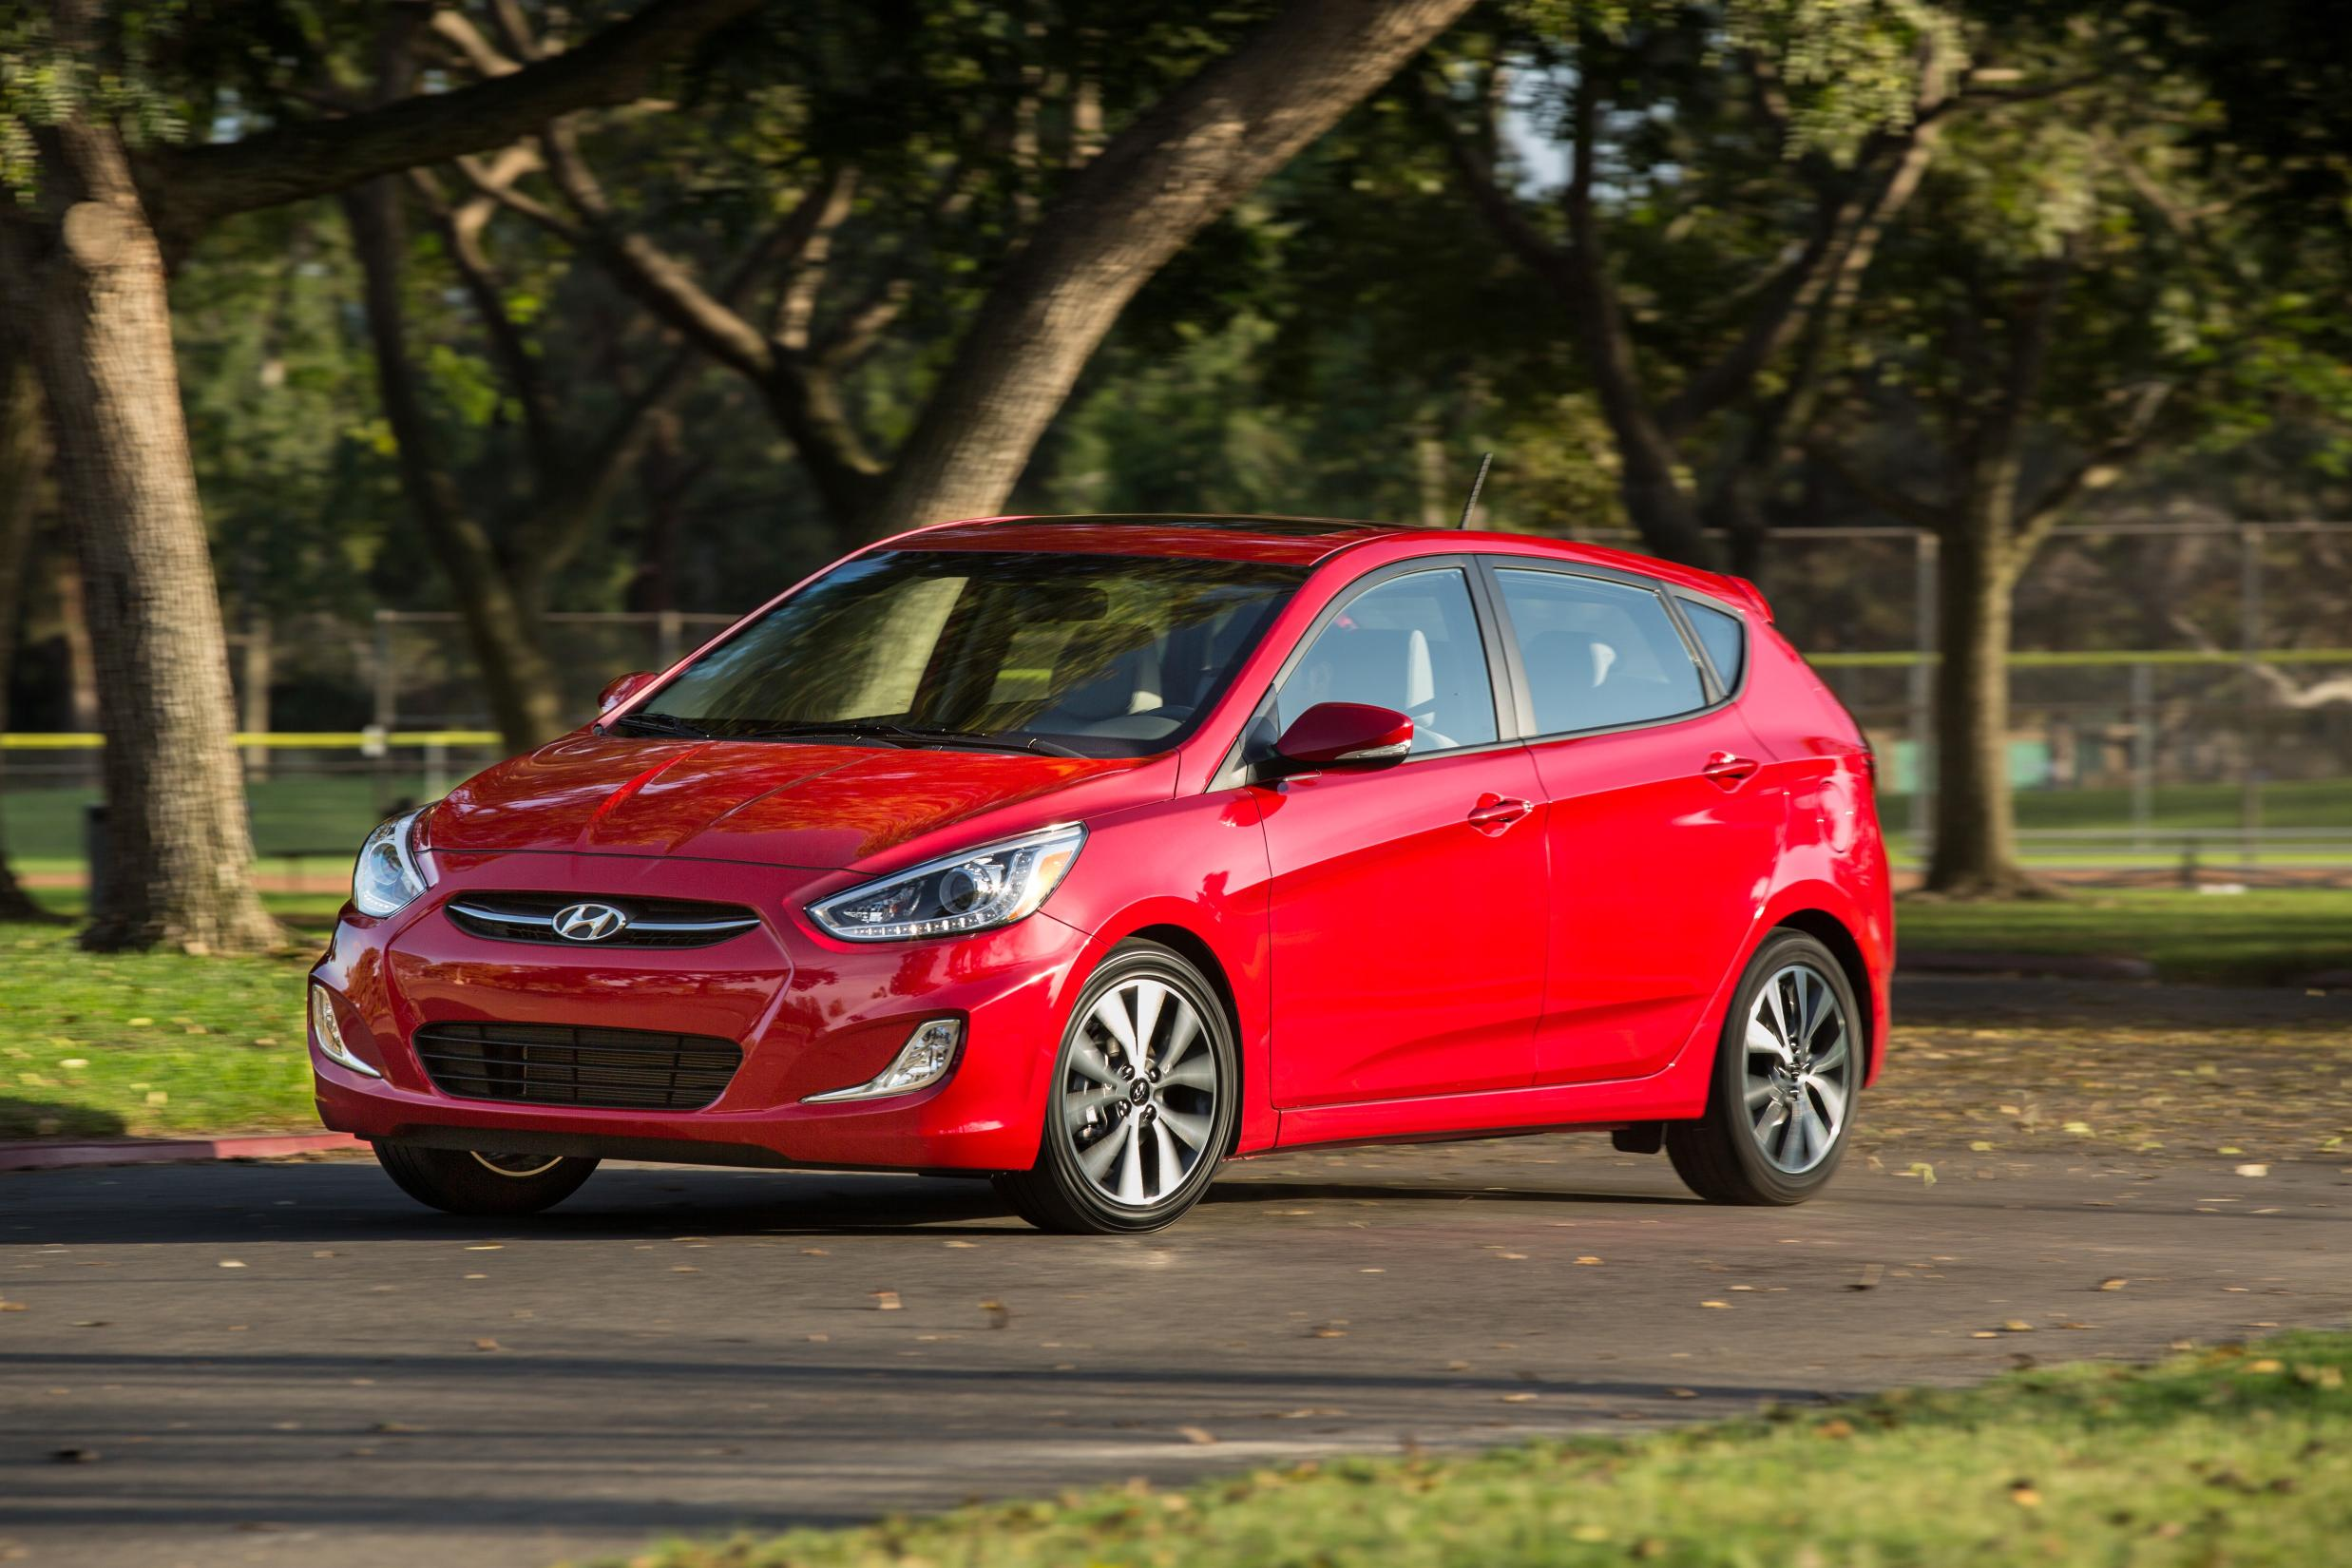 Hyundai Models 2015 >> 2015 Hyundai Accent Is 100 More Expensive Than The 2014